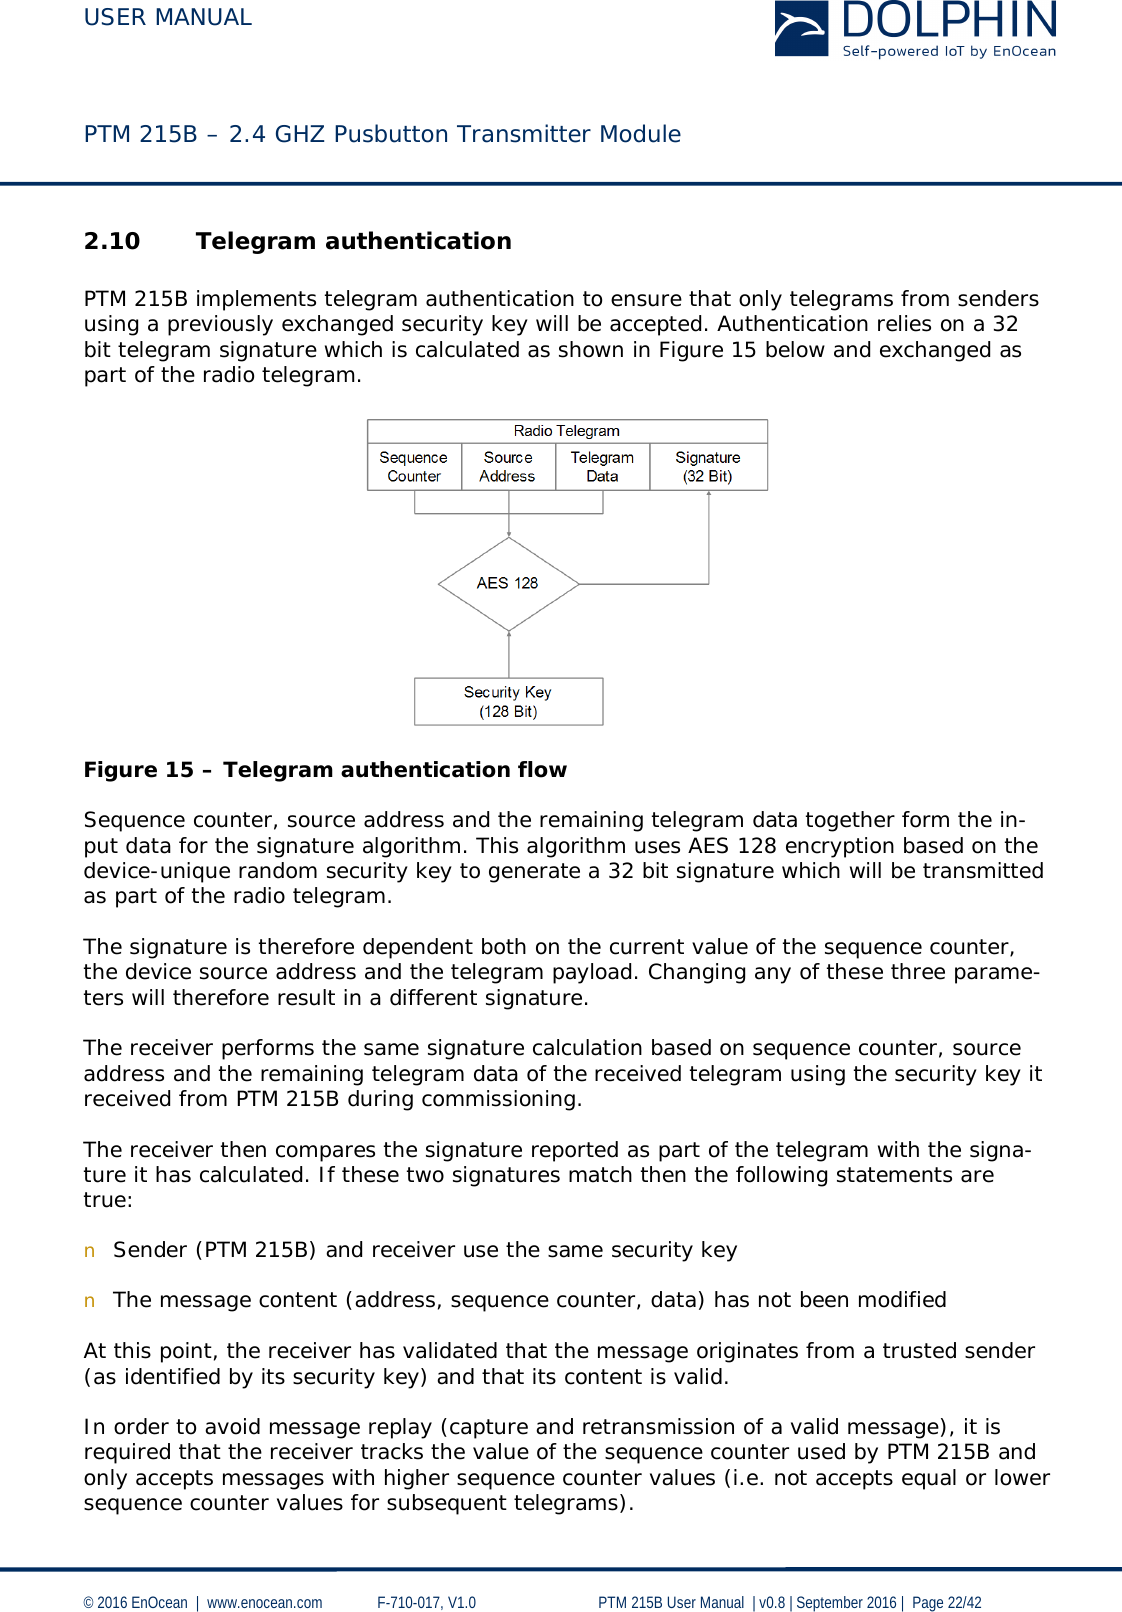 USER MANUAL    PTM 215B – 2.4 GHZ Pusbutton Transmitter Module  © 2016 EnOcean     www.enocean.com   F-710-017, V1.0        PTM 215B User Manual    v0.8   September 2016    Page 22/42  2.10 Telegram authentication  PTM 215B implements telegram authentication to ensure that only telegrams from senders using a previously exchanged security key will be accepted. Authentication relies on a 32 bit telegram signature which is calculated as shown in Figure 15 below and exchanged as part of the radio telegram.     Figure 15 – Telegram authentication flow  Sequence counter, source address and the remaining telegram data together form the in-put data for the signature algorithm. This algorithm uses AES 128 encryption based on the device-unique random security key to generate a 32 bit signature which will be transmitted as part of the radio telegram.  The signature is therefore dependent both on the current value of the sequence counter, the device source address and the telegram payload. Changing any of these three parame-ters will therefore result in a different signature.  The receiver performs the same signature calculation based on sequence counter, source address and the remaining telegram data of the received telegram using the security key it received from PTM 215B during commissioning.   The receiver then compares the signature reported as part of the telegram with the signa-ture it has calculated. If these two signatures match then the following statements are true:  n Sender (PTM 215B) and receiver use the same security key  n The message content (address, sequence counter, data) has not been modified  At this point, the receiver has validated that the message originates from a trusted sender (as identified by its security key) and that its content is valid.   In order to avoid message replay (capture and retransmission of a valid message), it is required that the receiver tracks the value of the sequence counter used by PTM 215B and only accepts messages with highe